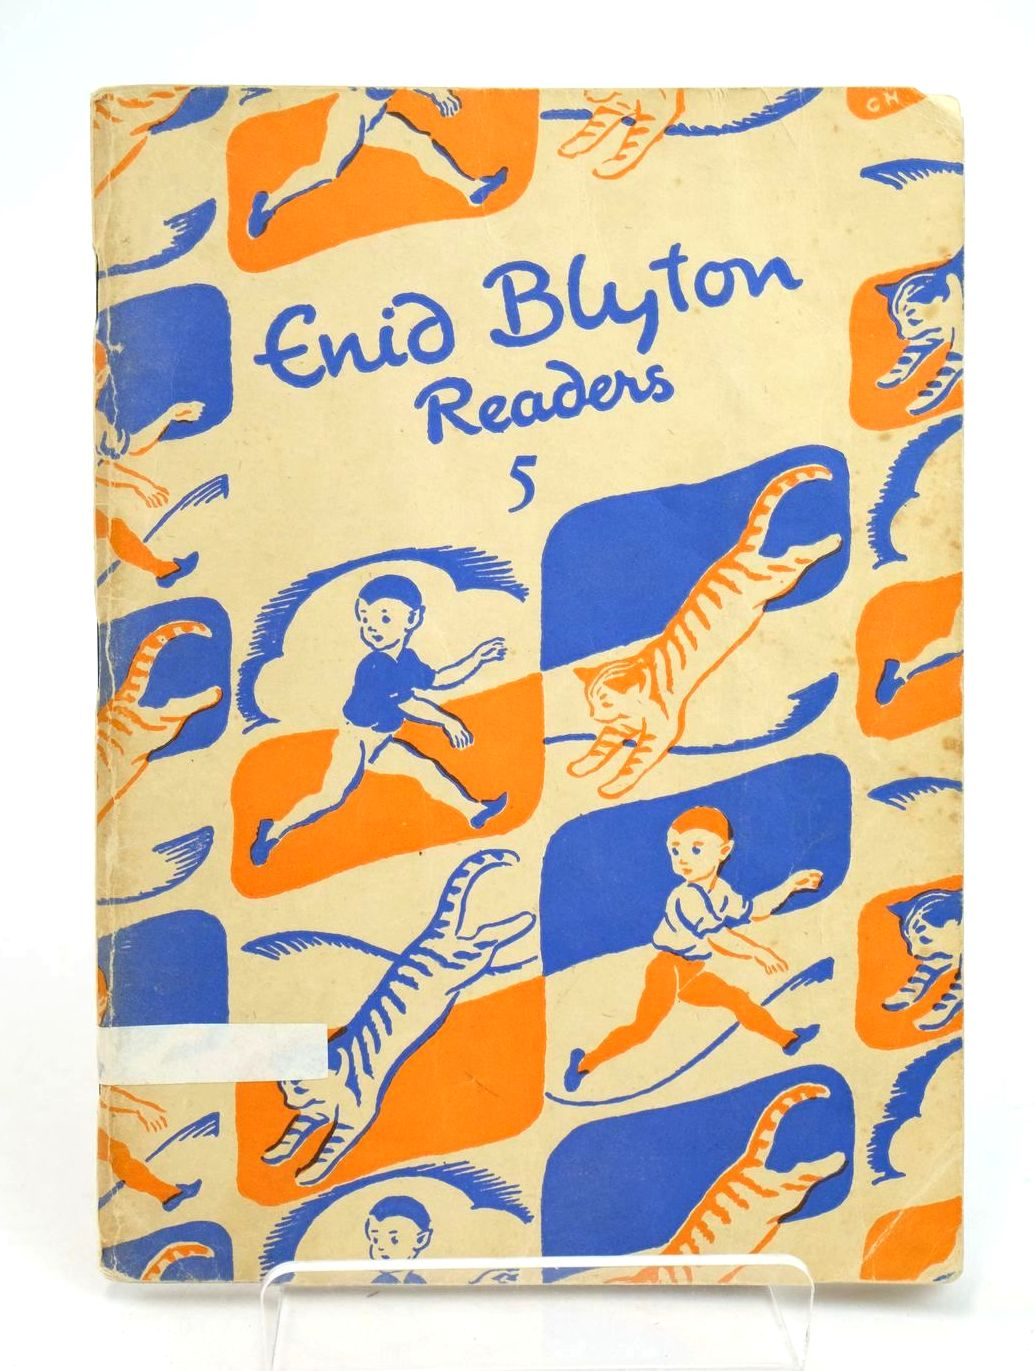 Photo of ENID BLYTON READERS 5 written by Blyton, Enid illustrated by Soper, Eileen published by Macmillan & Co. Ltd. (STOCK CODE: 1318988)  for sale by Stella & Rose's Books